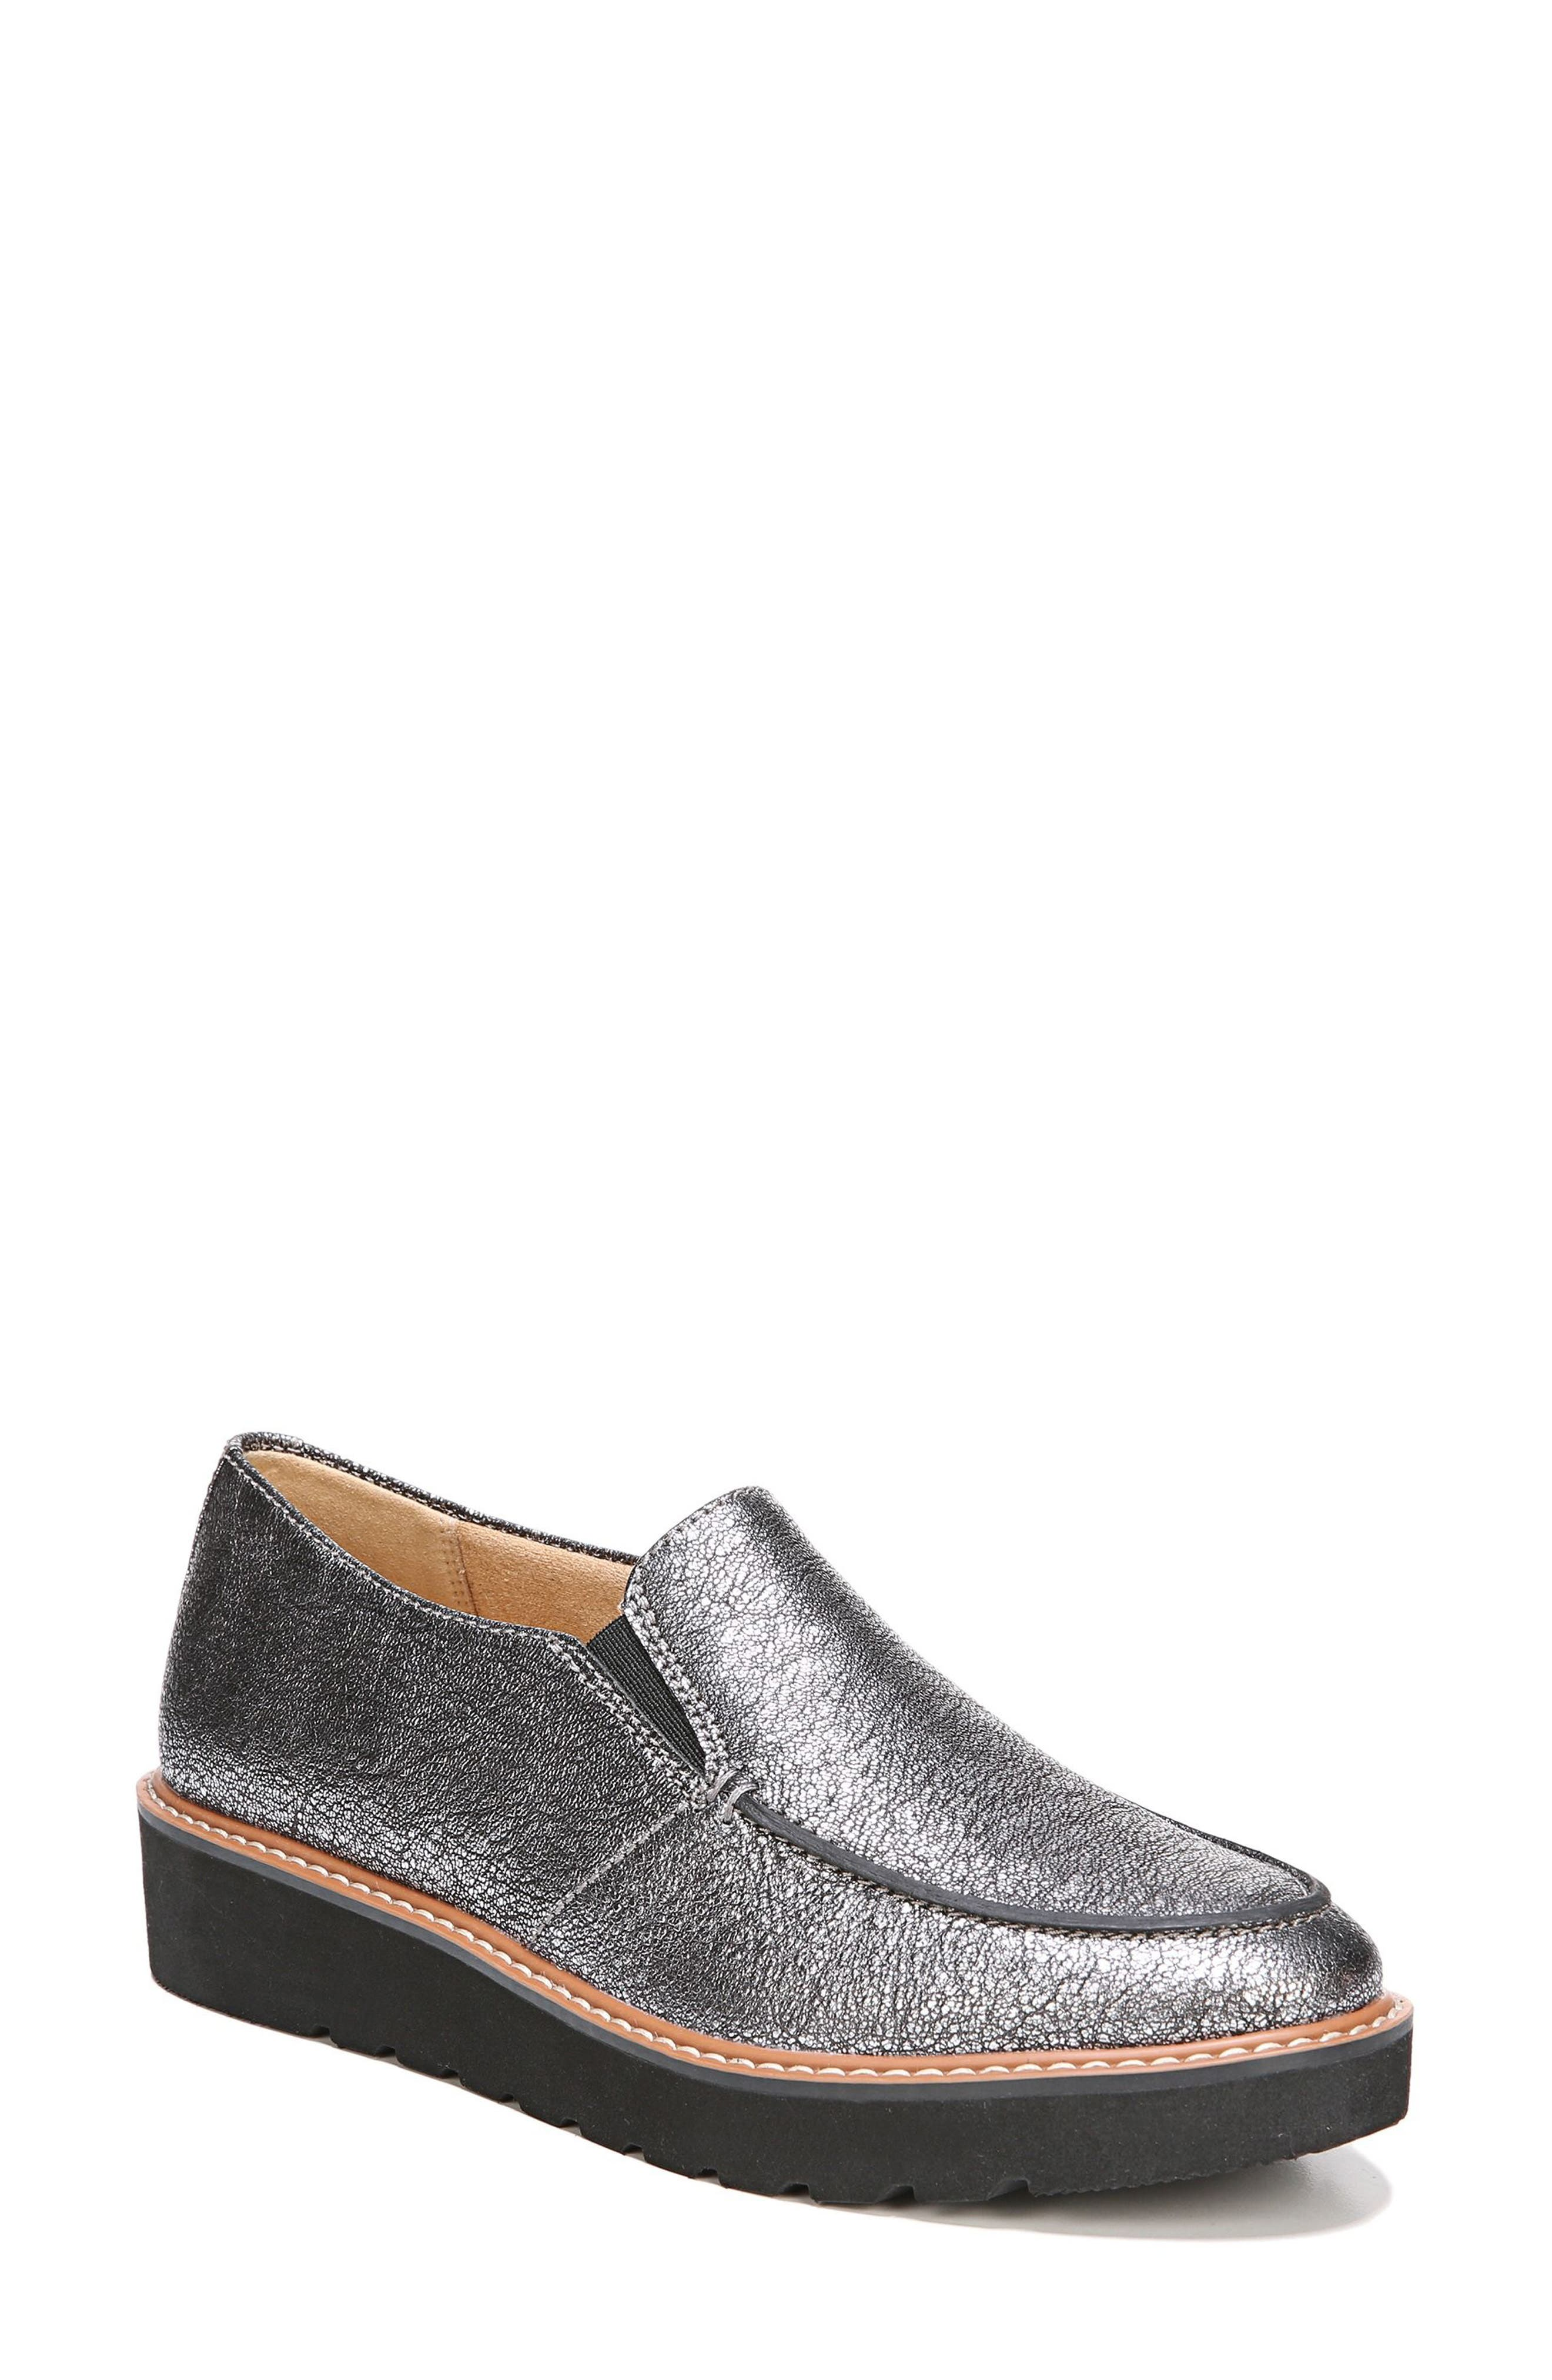 Aibileen Loafer,                             Main thumbnail 1, color,                             SILVER LEATHER